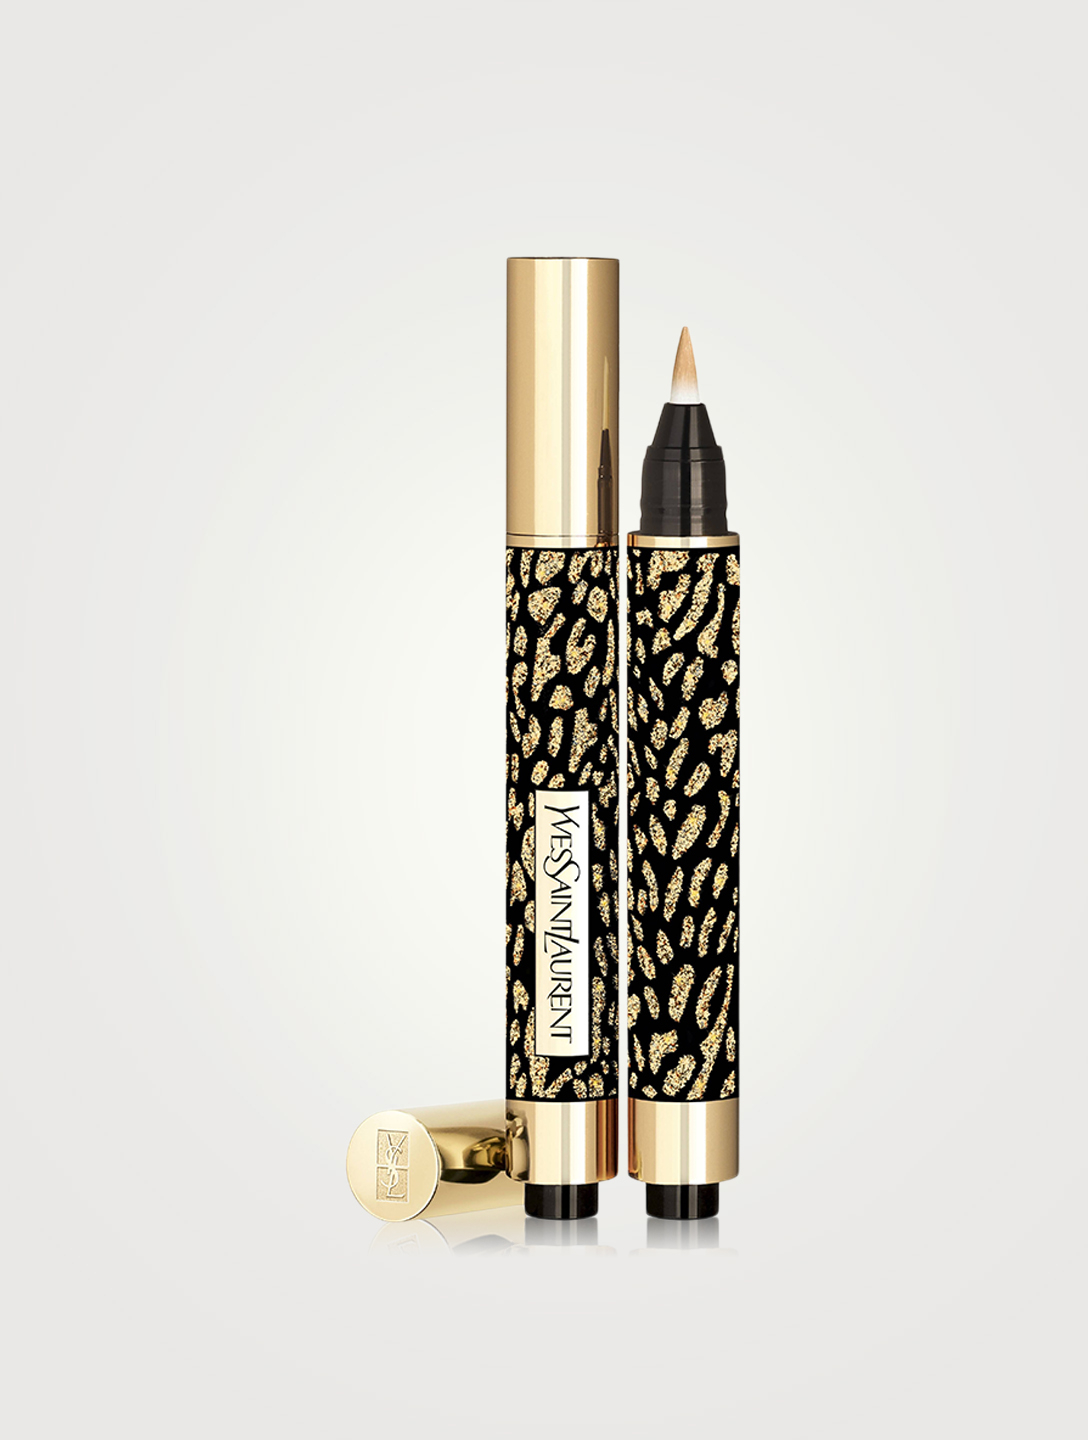 YVES SAINT LAURENT Touche Éclat High Coverage Concealer - Holiday Collection 2020 Beauty Neutral